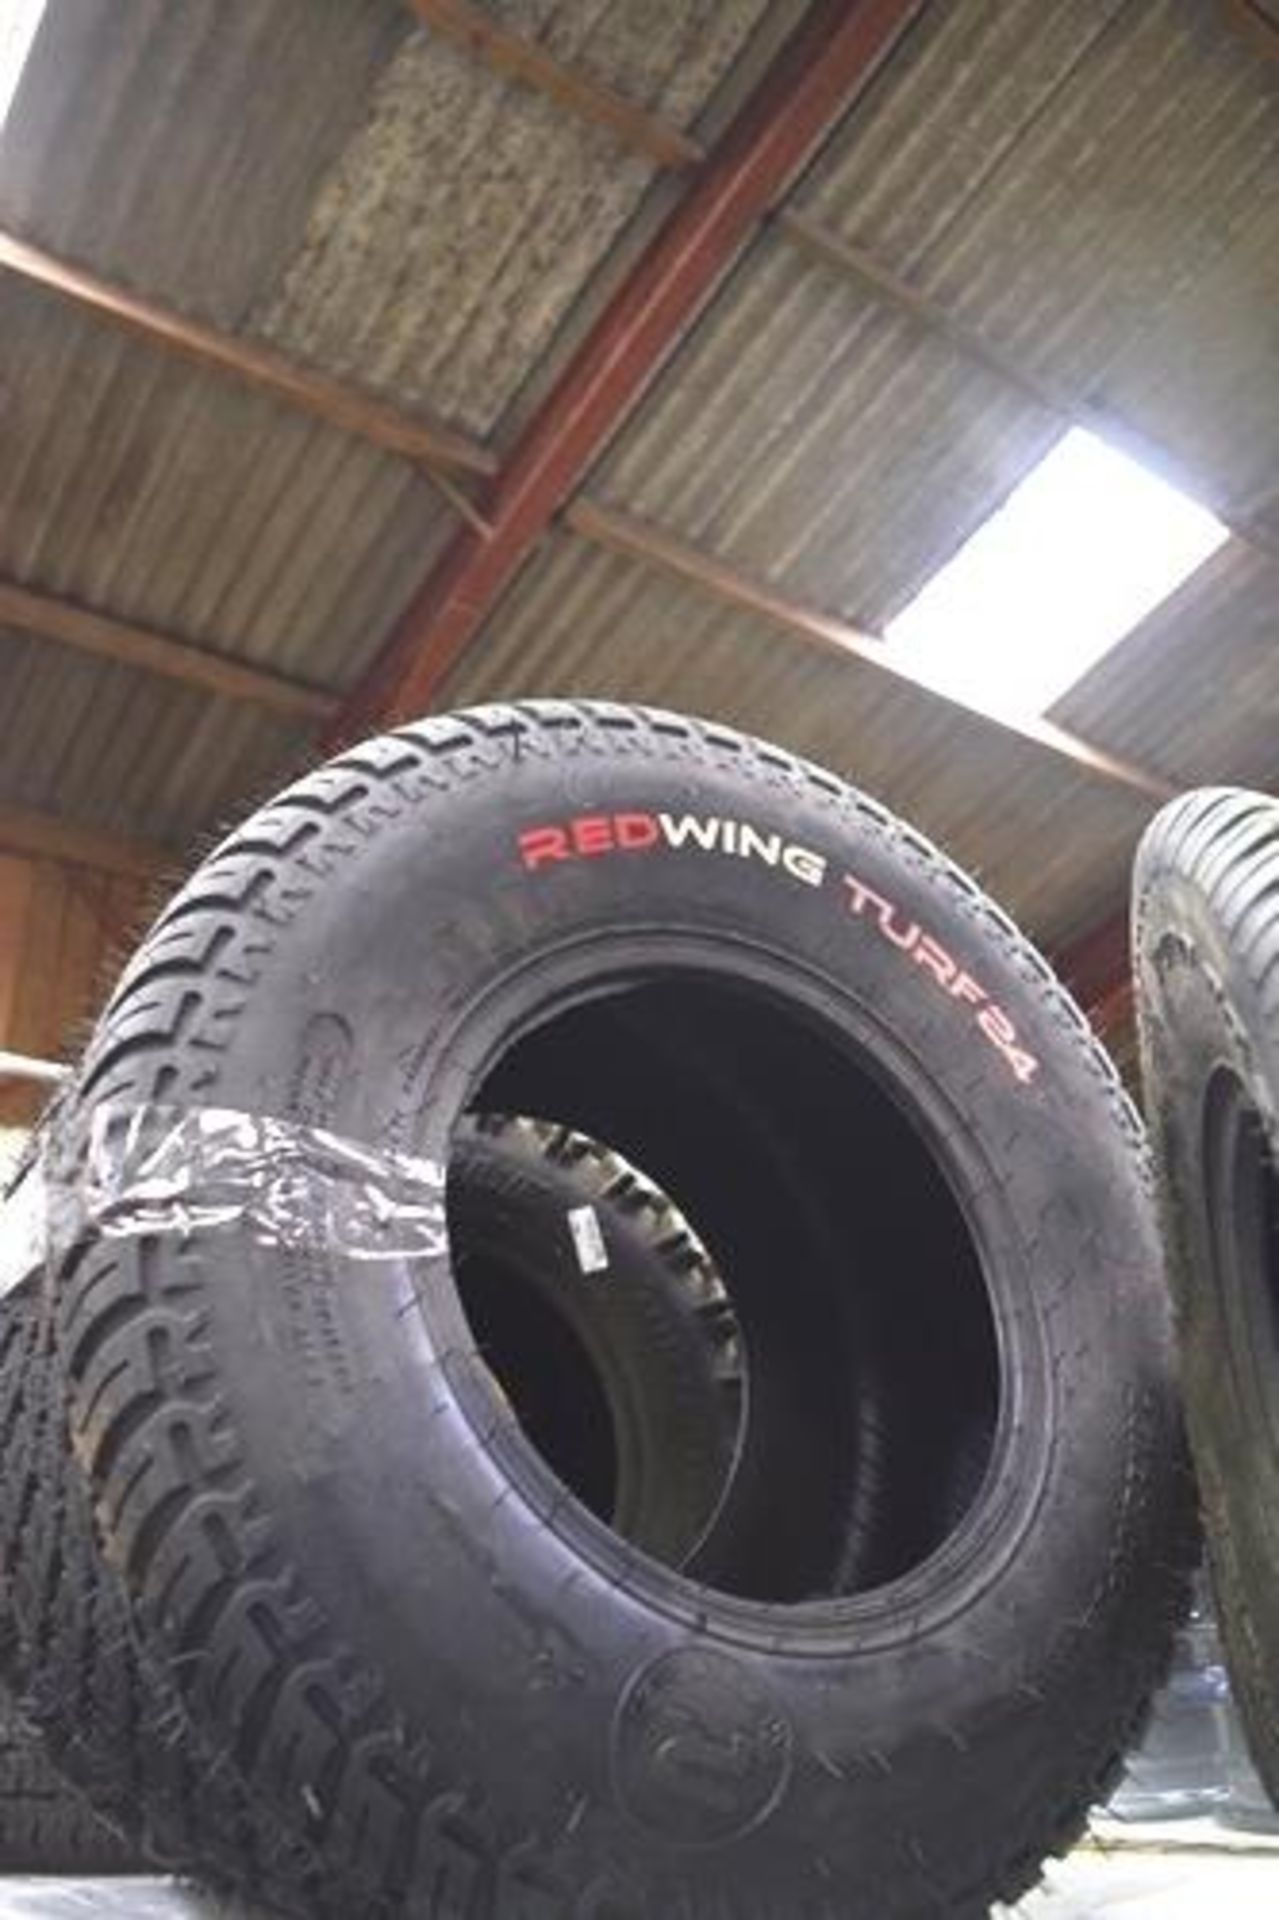 1 x Redwing Turf 24 tyre, size 26 x 12.00-12 NHS - New (GS10) - Image 2 of 2